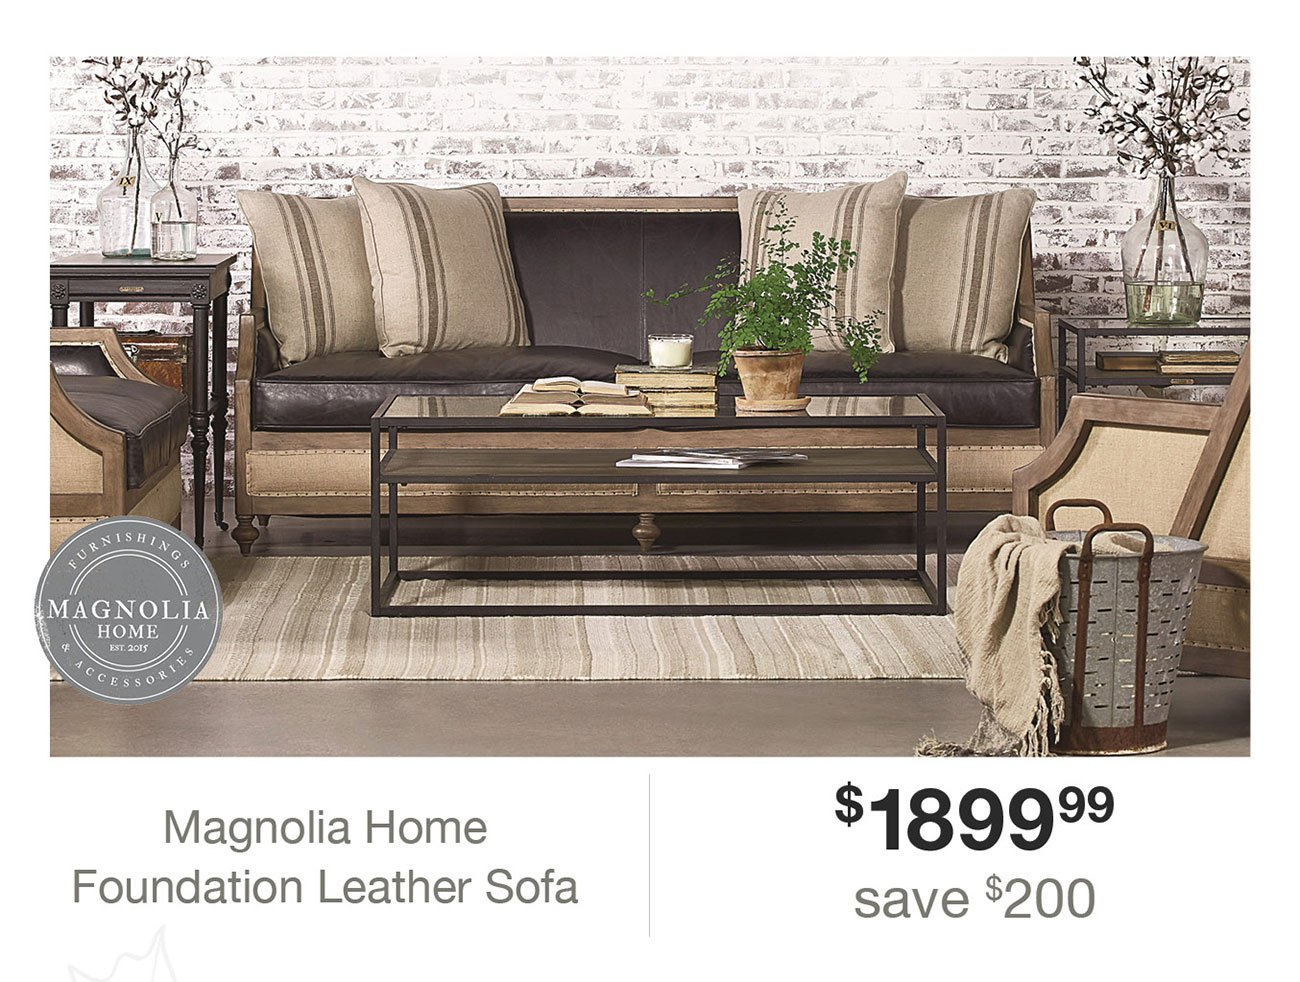 Expired Email: Hi Angela, Click Here To Make Your Home A Magnolia Intended For Magnolia Home Foundation Leather Sofa Chairs (Image 2 of 20)